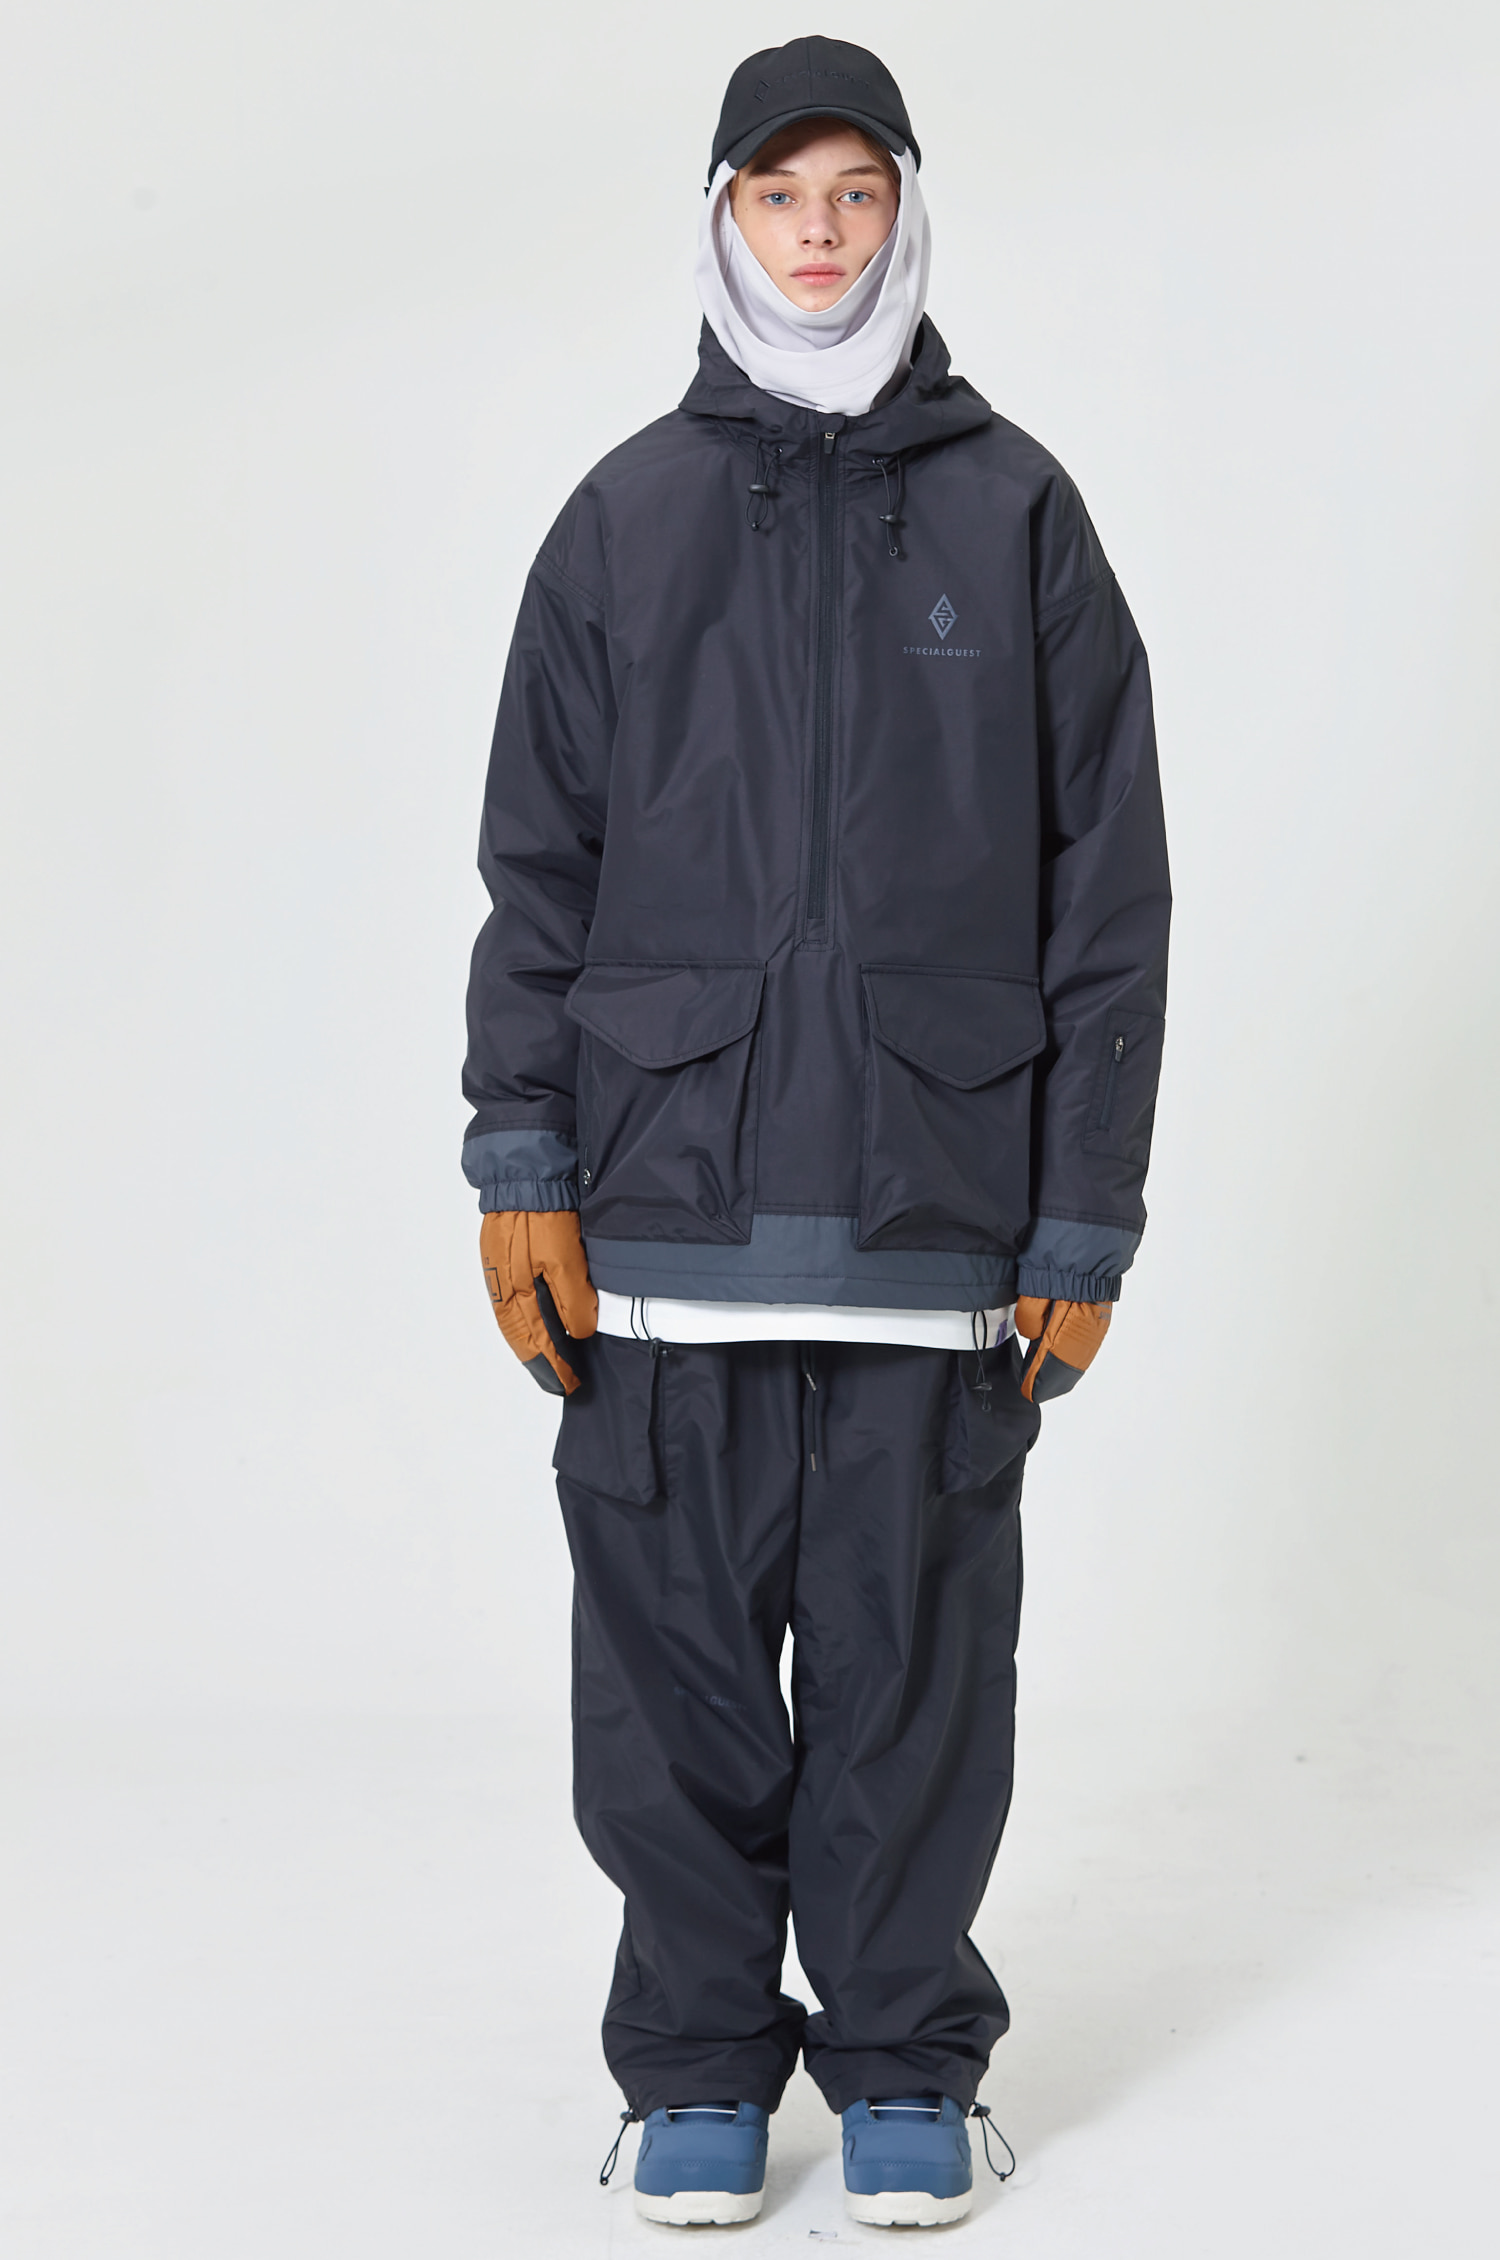 SET 21 - ANORAK / PANTS